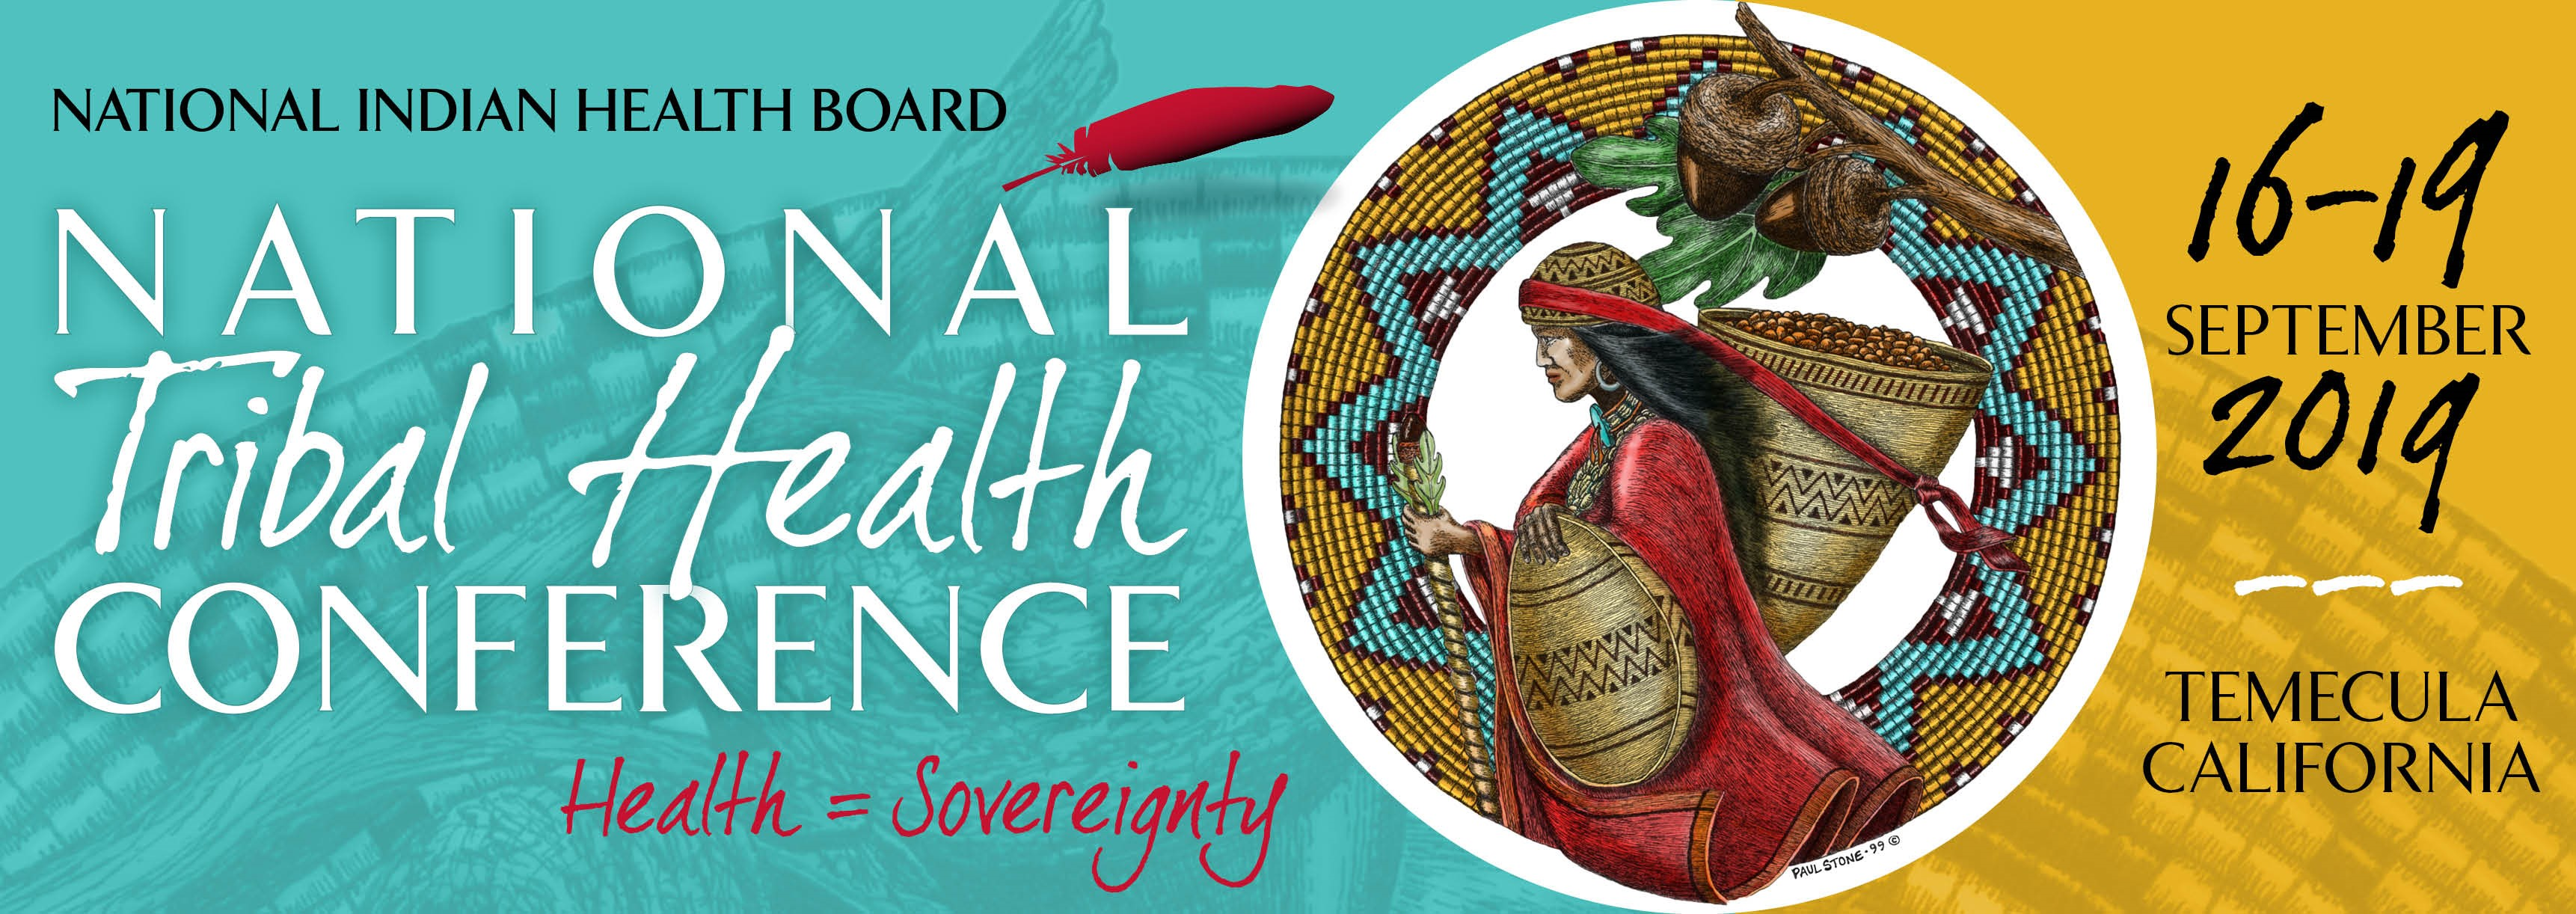 The 36th Annual National Tribal Health Conference